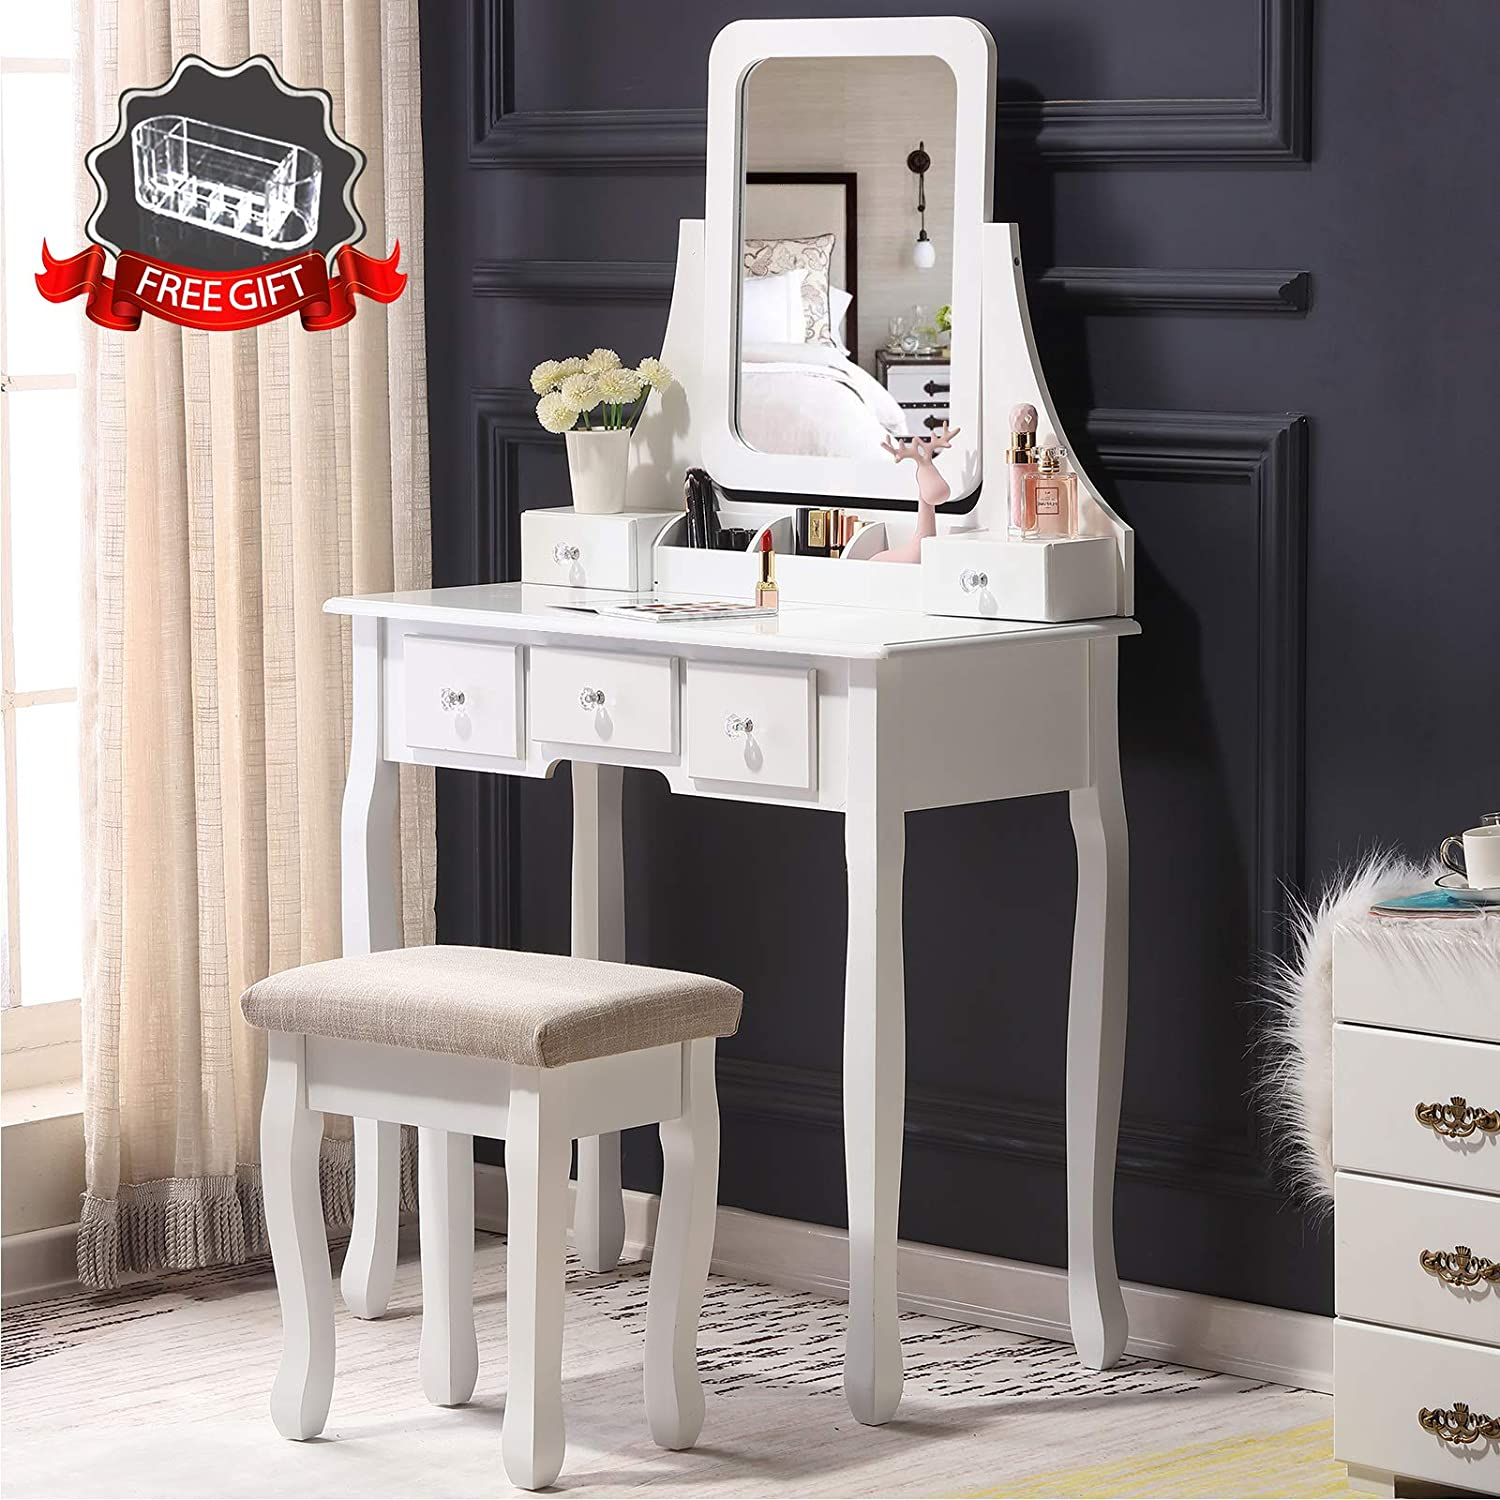 Unihome Makeup Vanity Set with Mirror, Cushioned Stool, 5 Drawers and Gift Makeup Organizer Dressing Table White (5 Drawers)